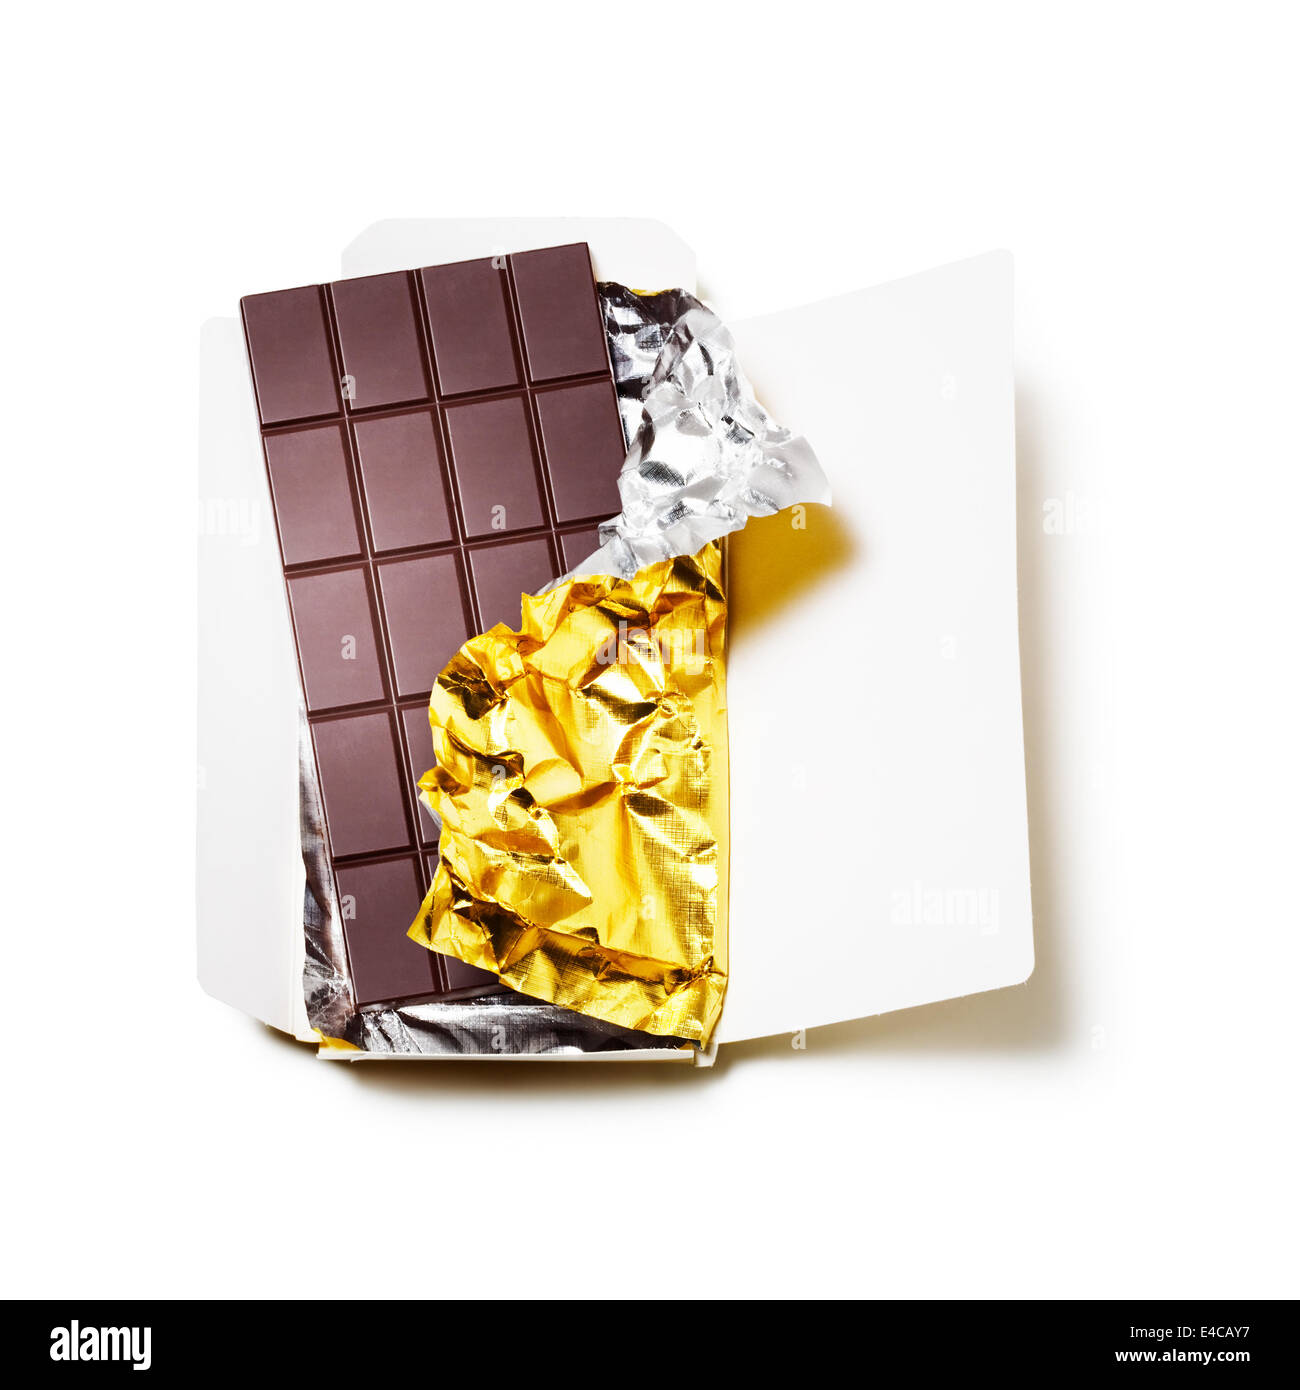 Chocolate bar wrapped in foil with open cardboard on white background Stock Photo